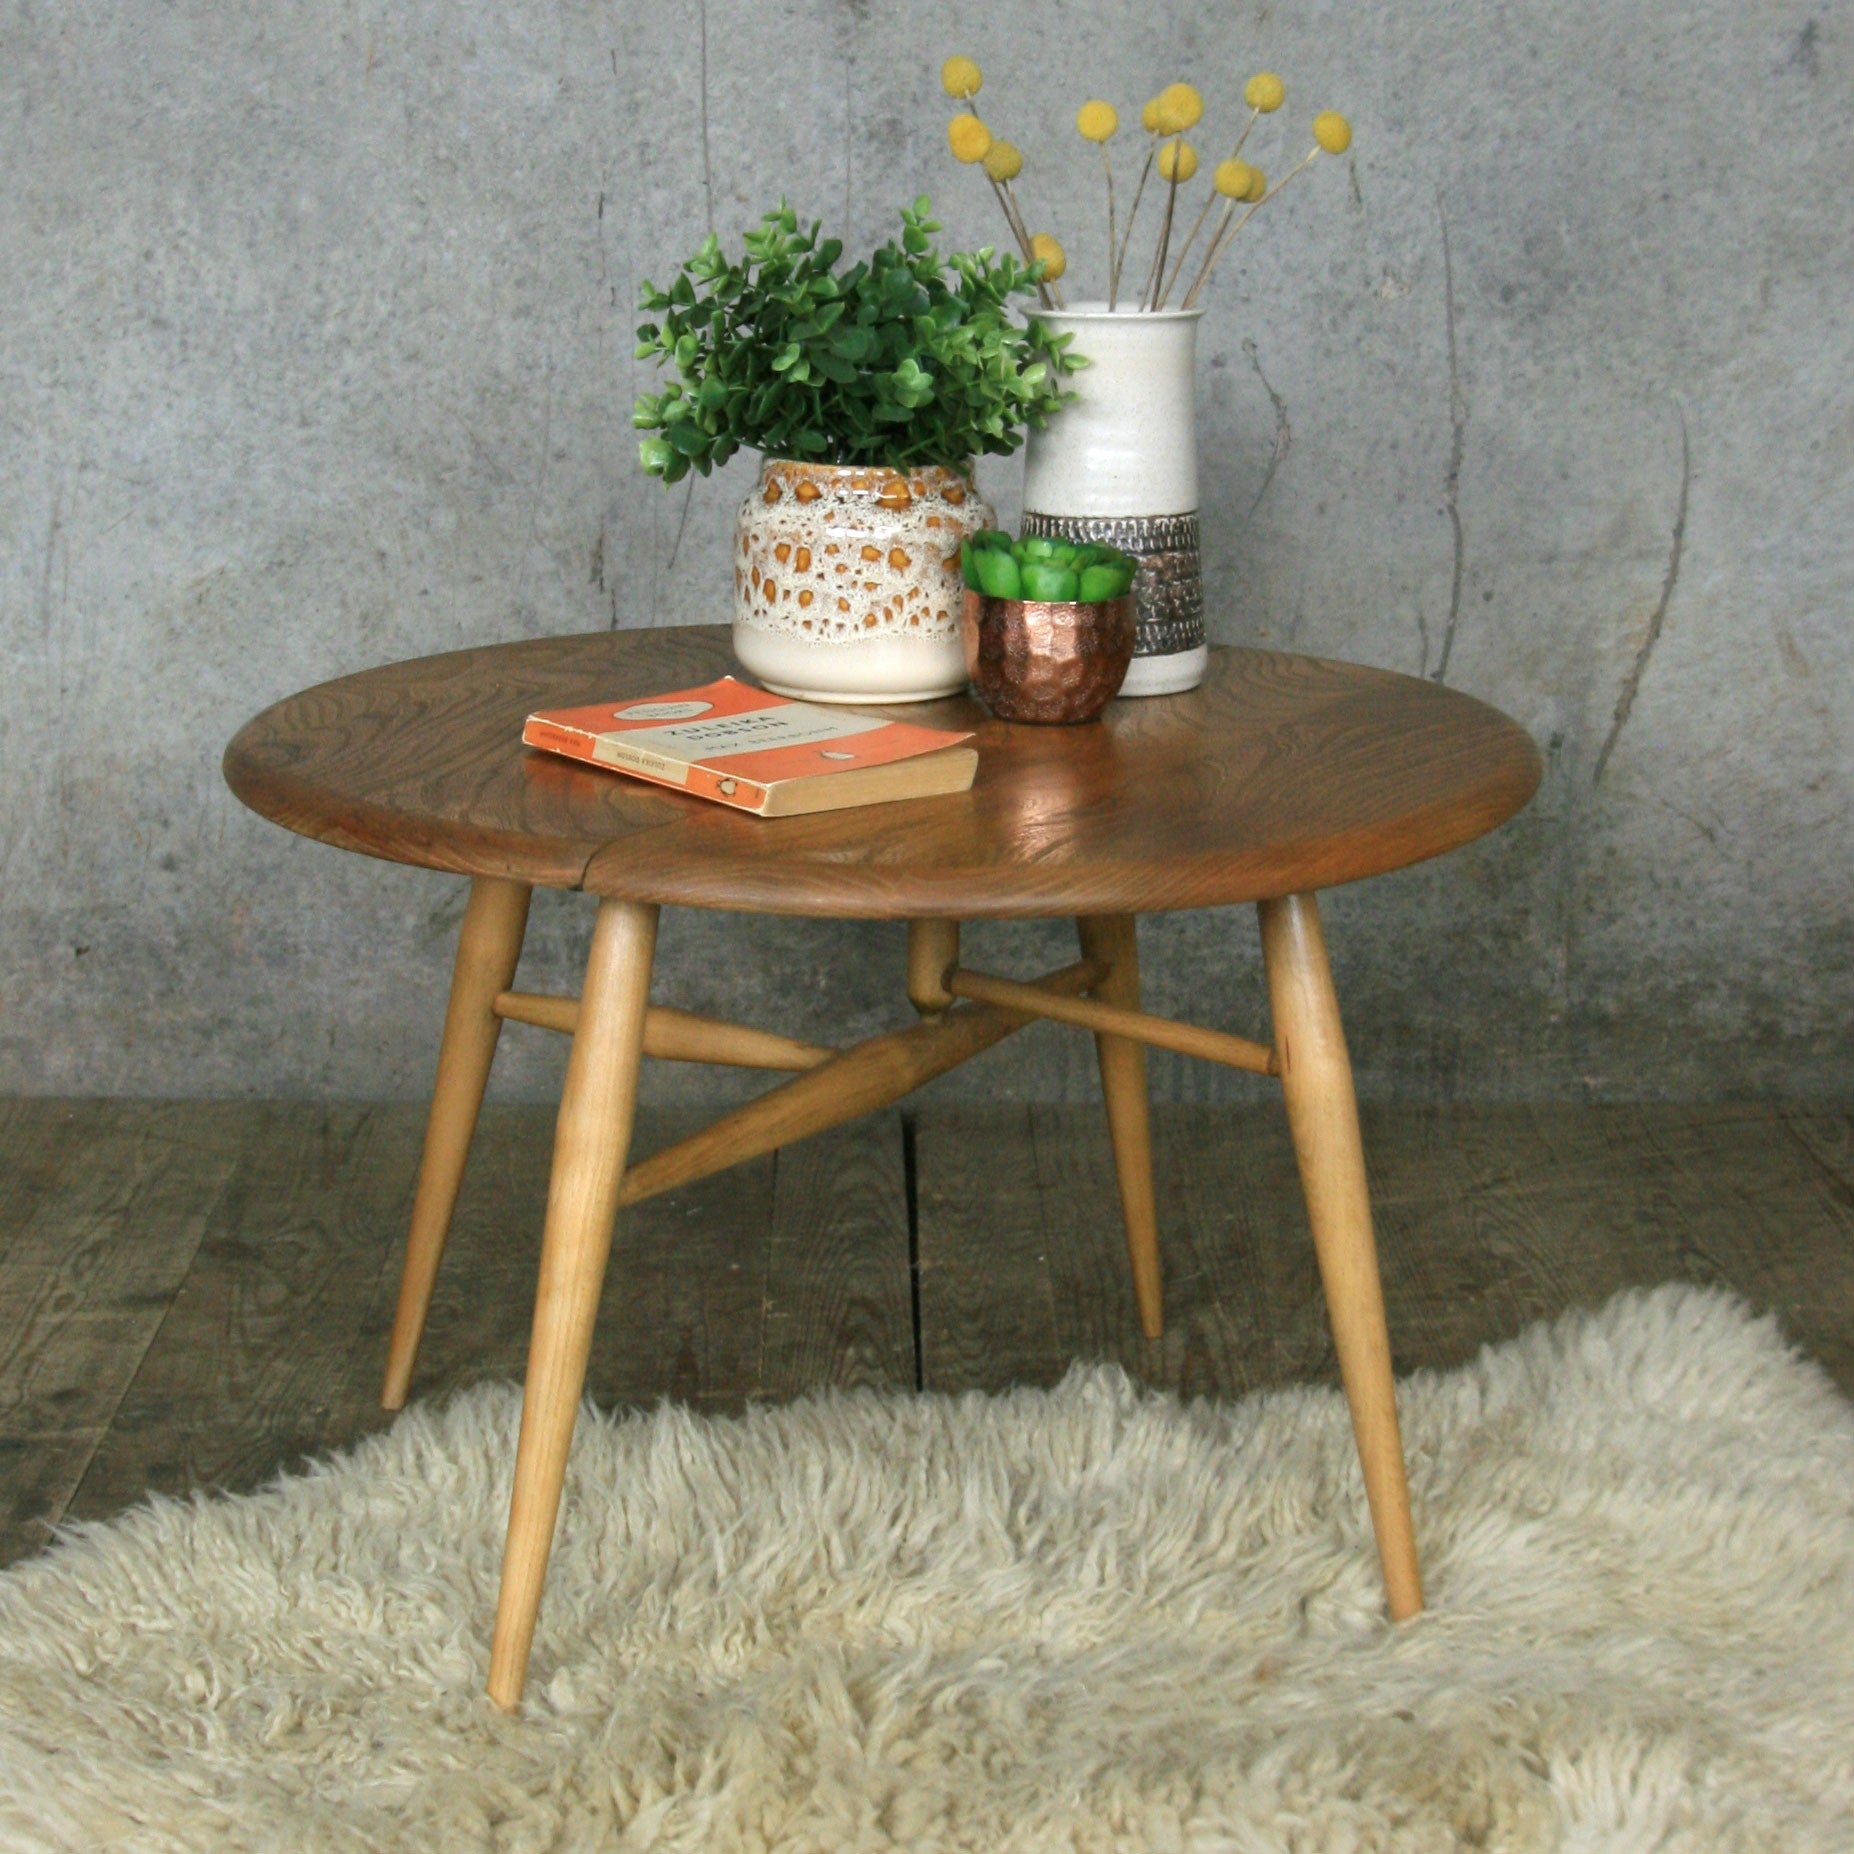 Vintage Ercol Coffee Tables For Sale: Ercol Mid Century Drop Leaf Coffee Table